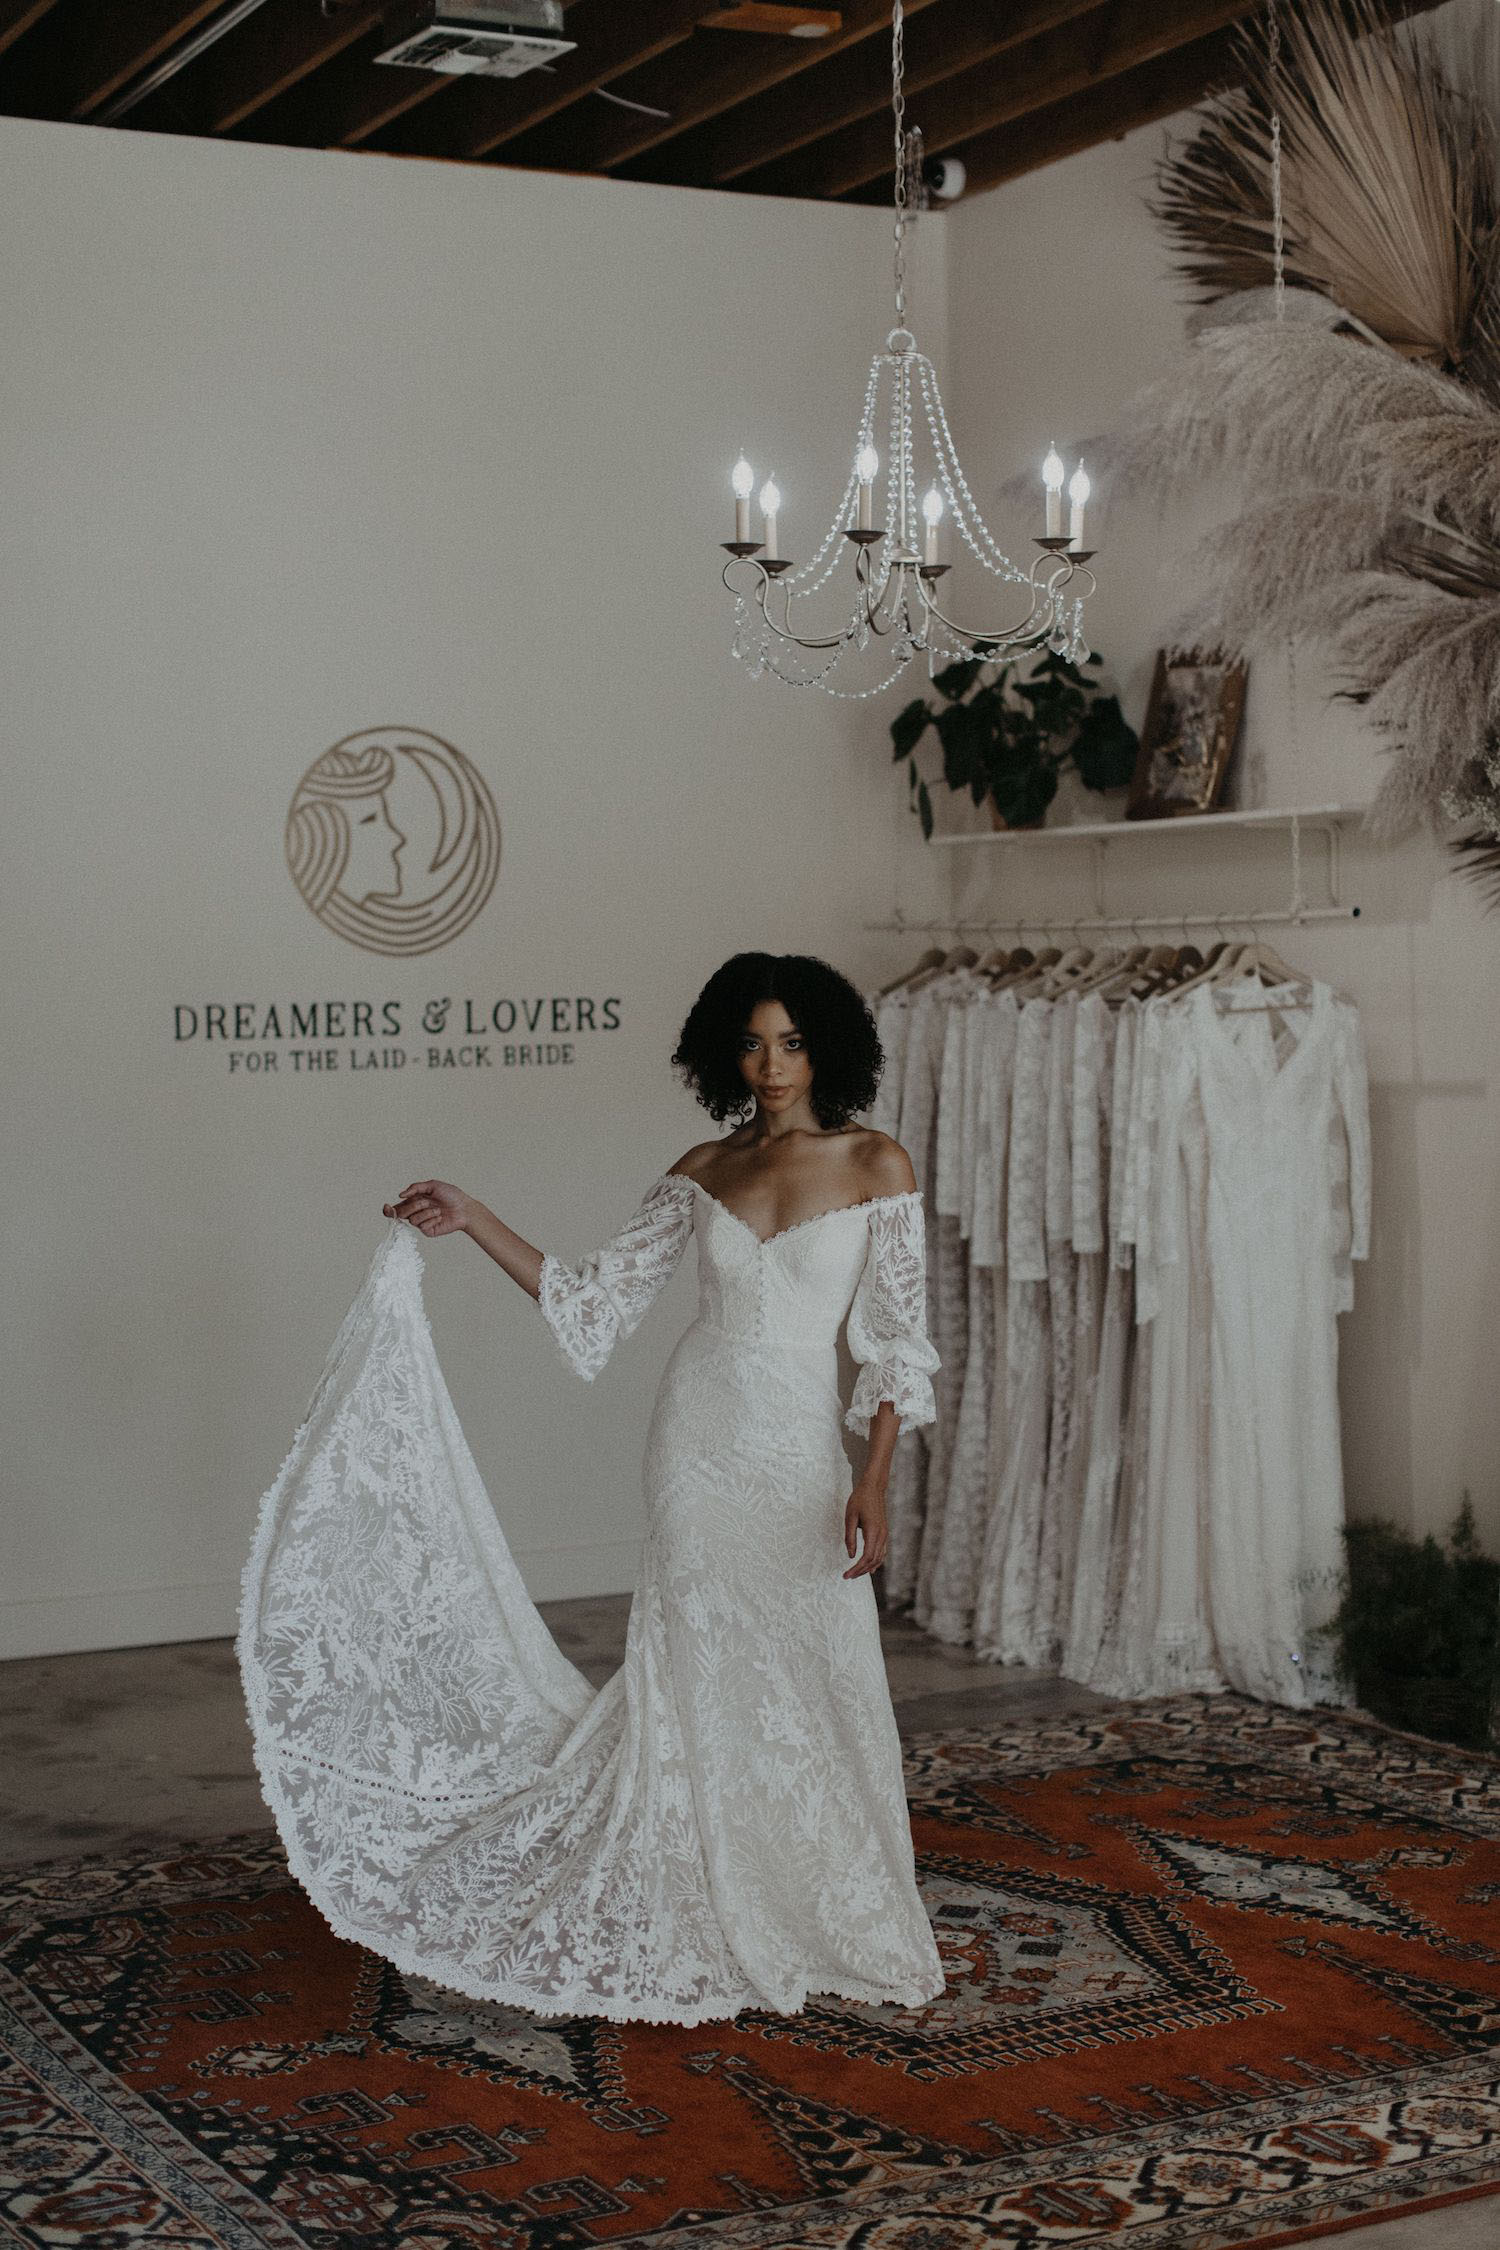 Dreamers & Lovers Flagship Launches with a New Boho Wedding Dress Collection!